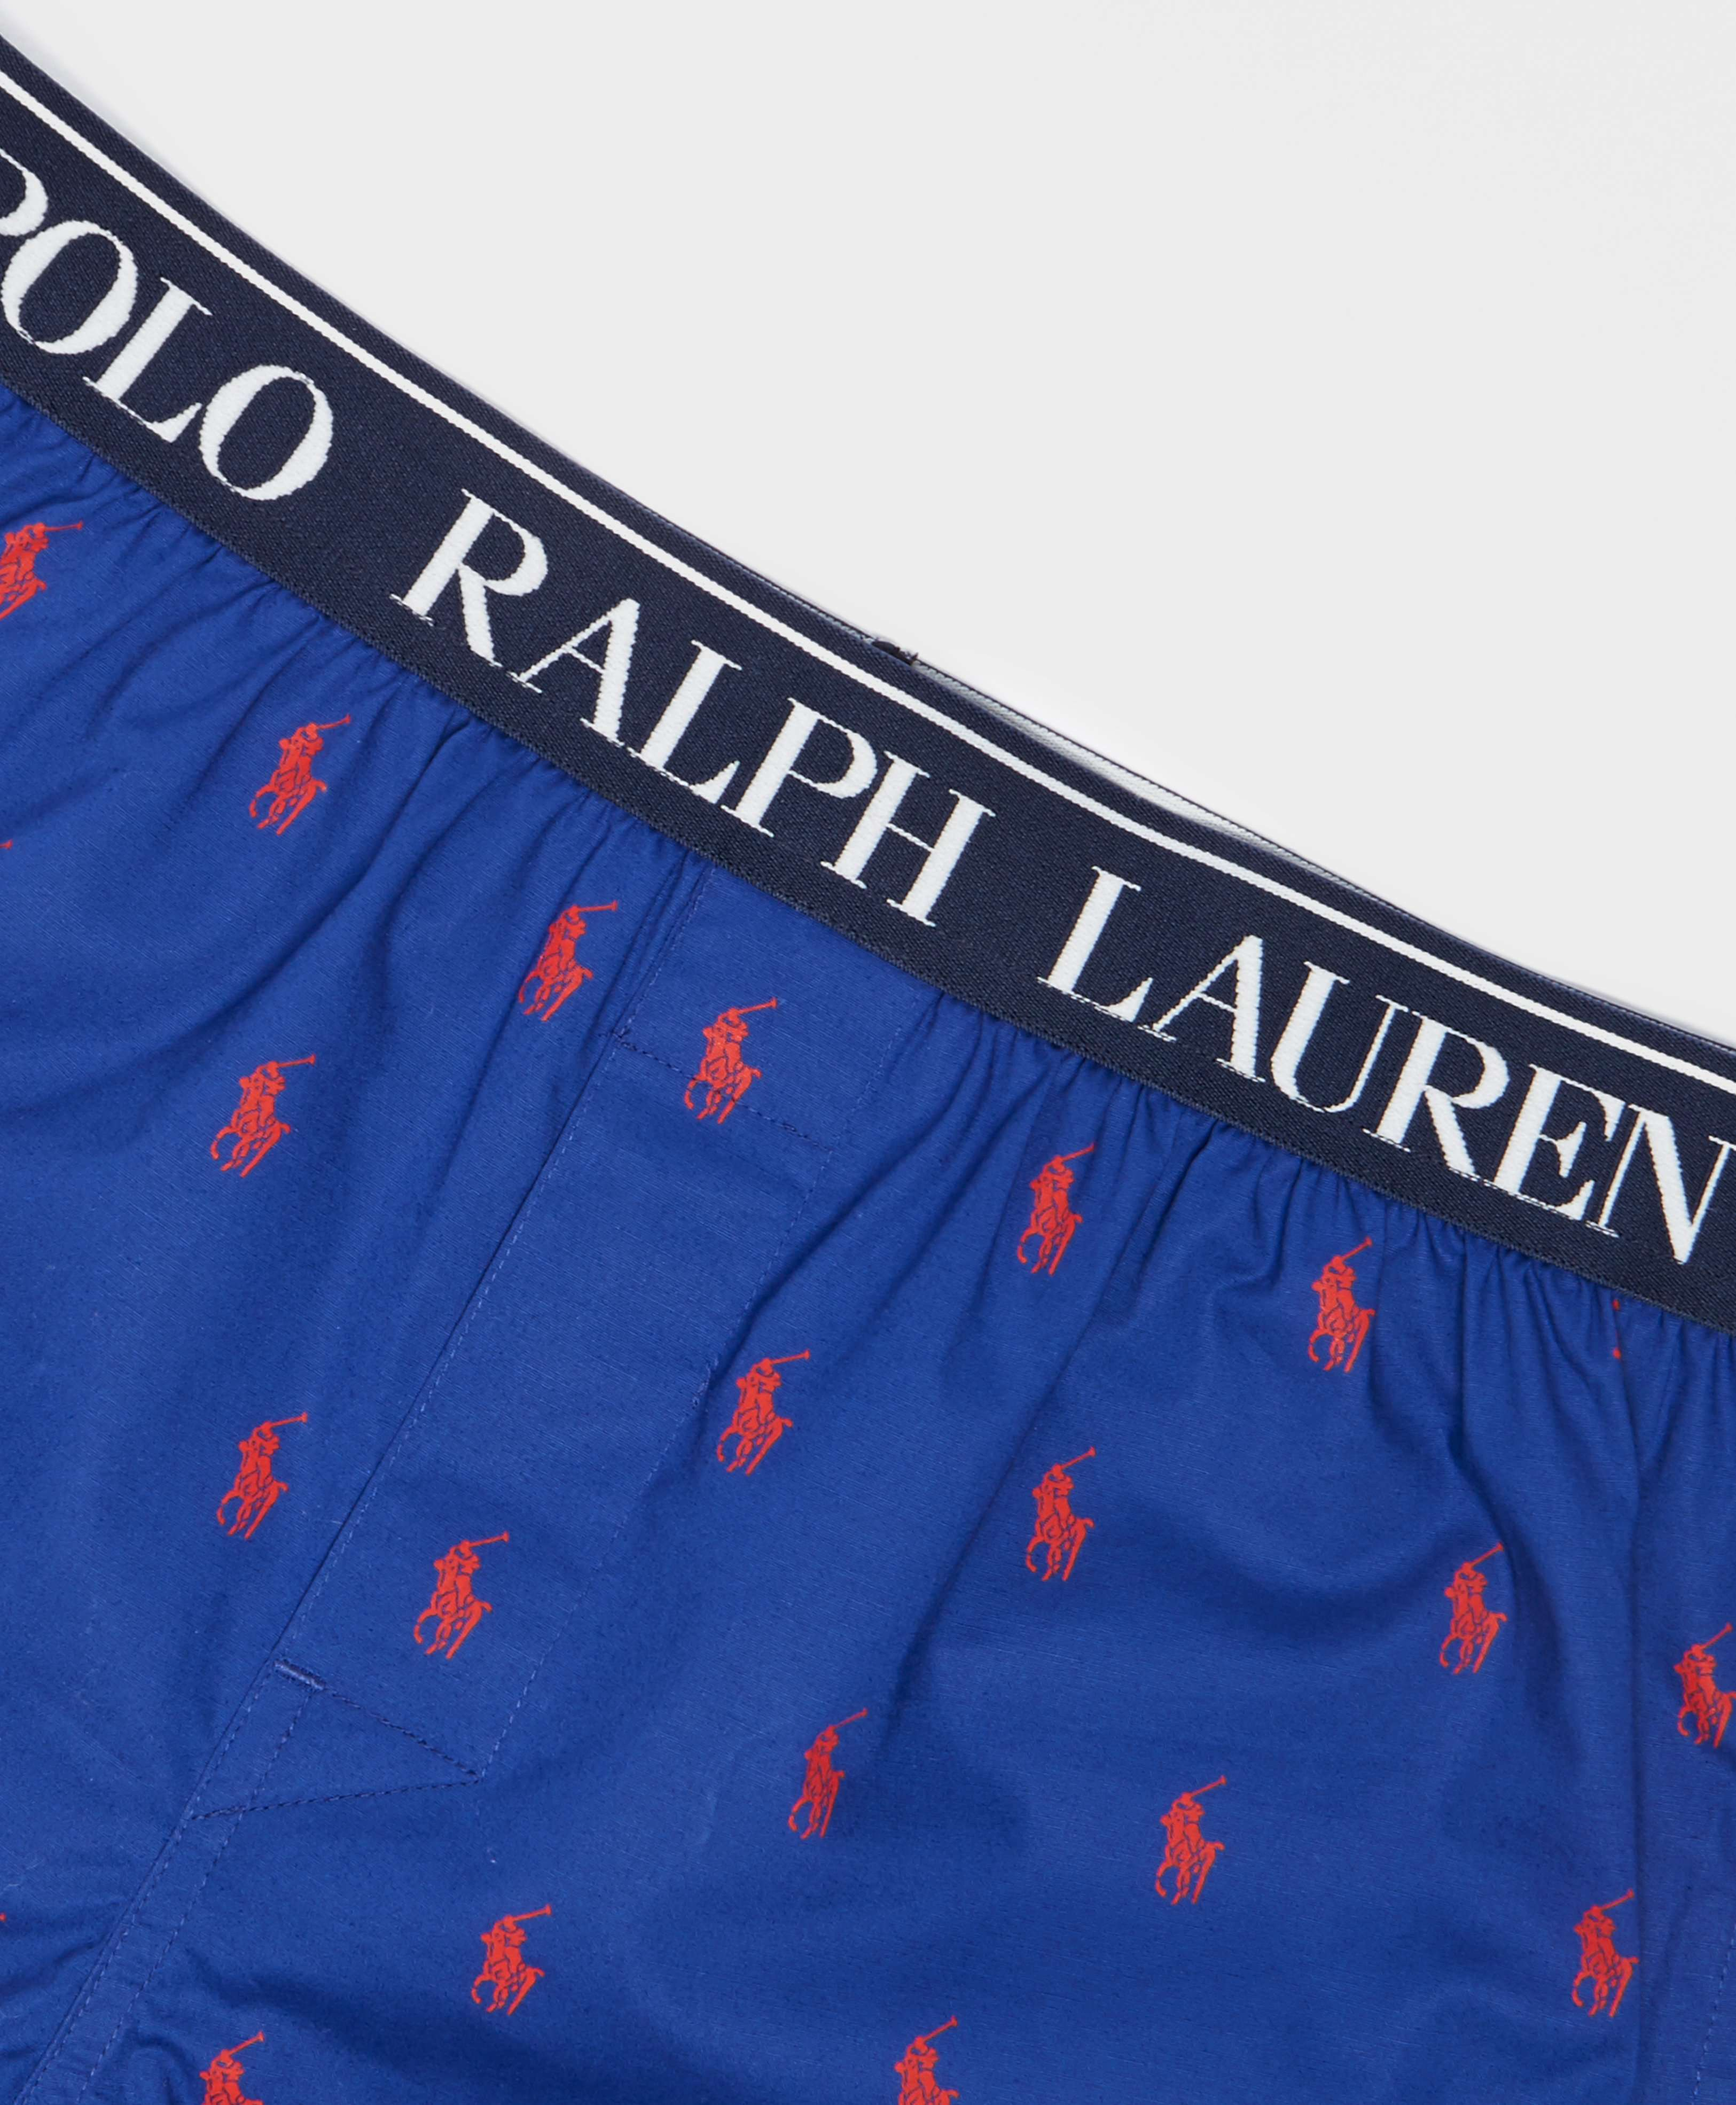 Polo Ralph Lauren All Over Print Woven Boxer Shorts